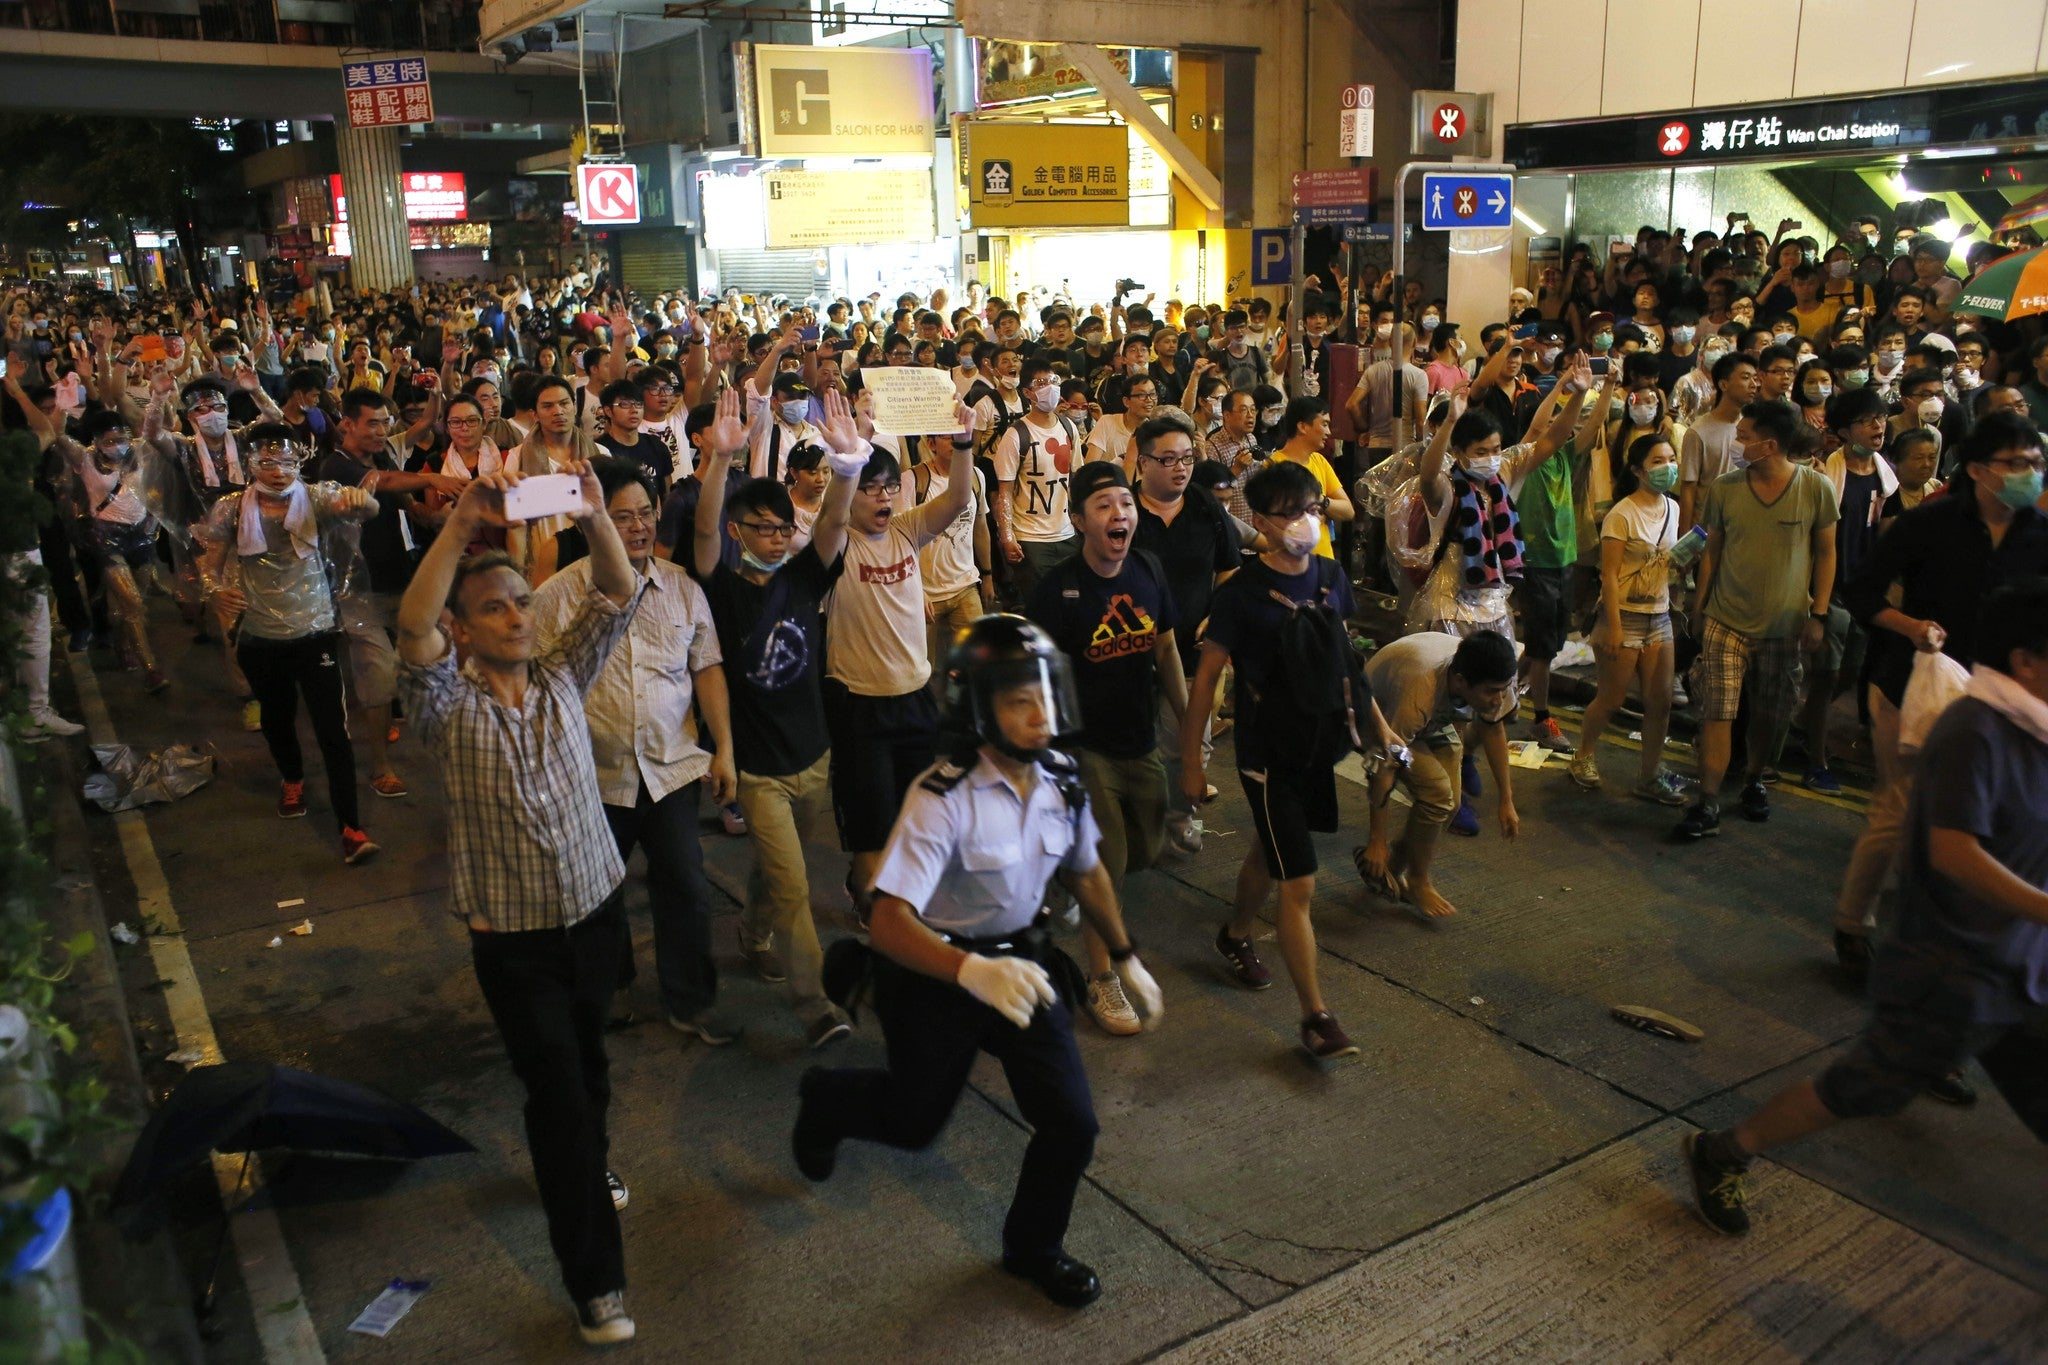 Hong Kong protests: What are they about, who's behind them, what do they want and what is the response?